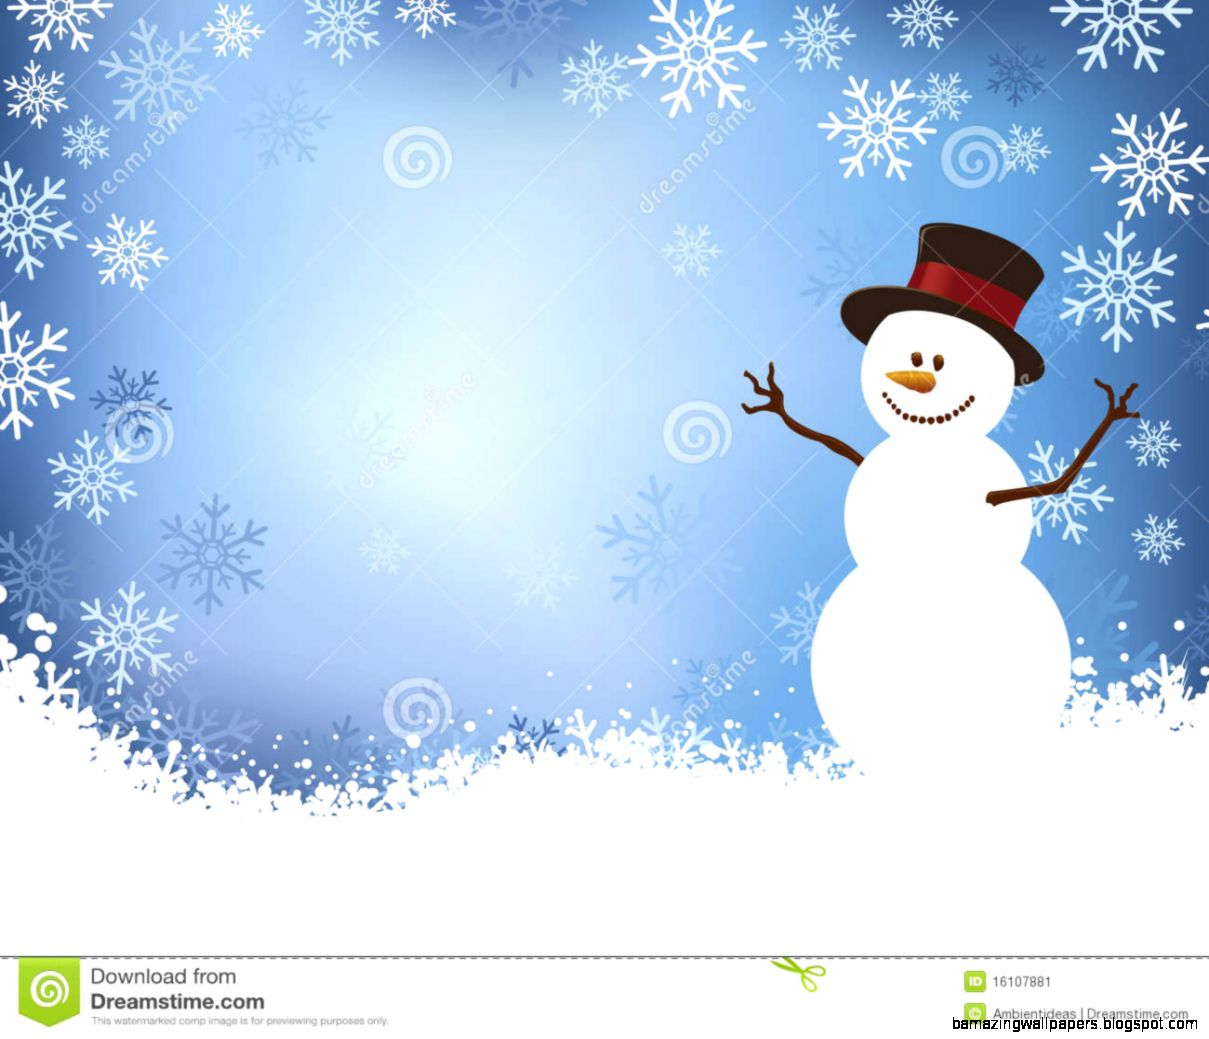 Winter Background Snowman Snow Snowflakes Stock Photos Images